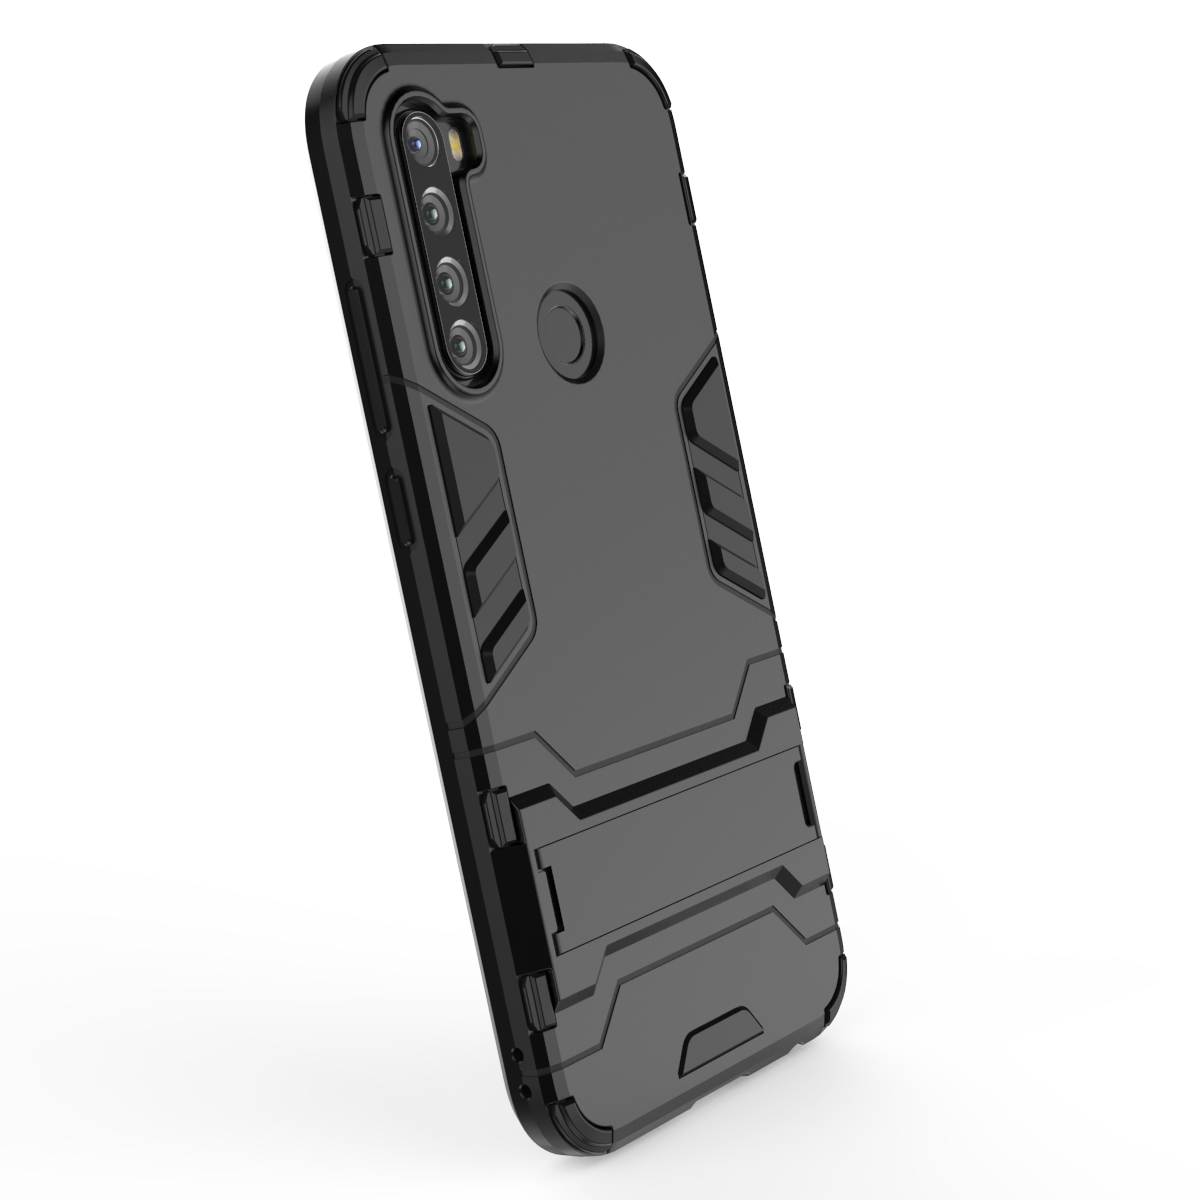 Anti Shock <font><b>Case</b></font> For <font><b>VIVO</b></font> V11 V11i V17 V15 Pro V5 V3 Plus Max 2 in 1 KickStand Impact <font><b>Case</b></font> Bumper Cover For <font><b>VIVO</b></font> V7 V9 V5 <font><b>V3Max</b></font> image